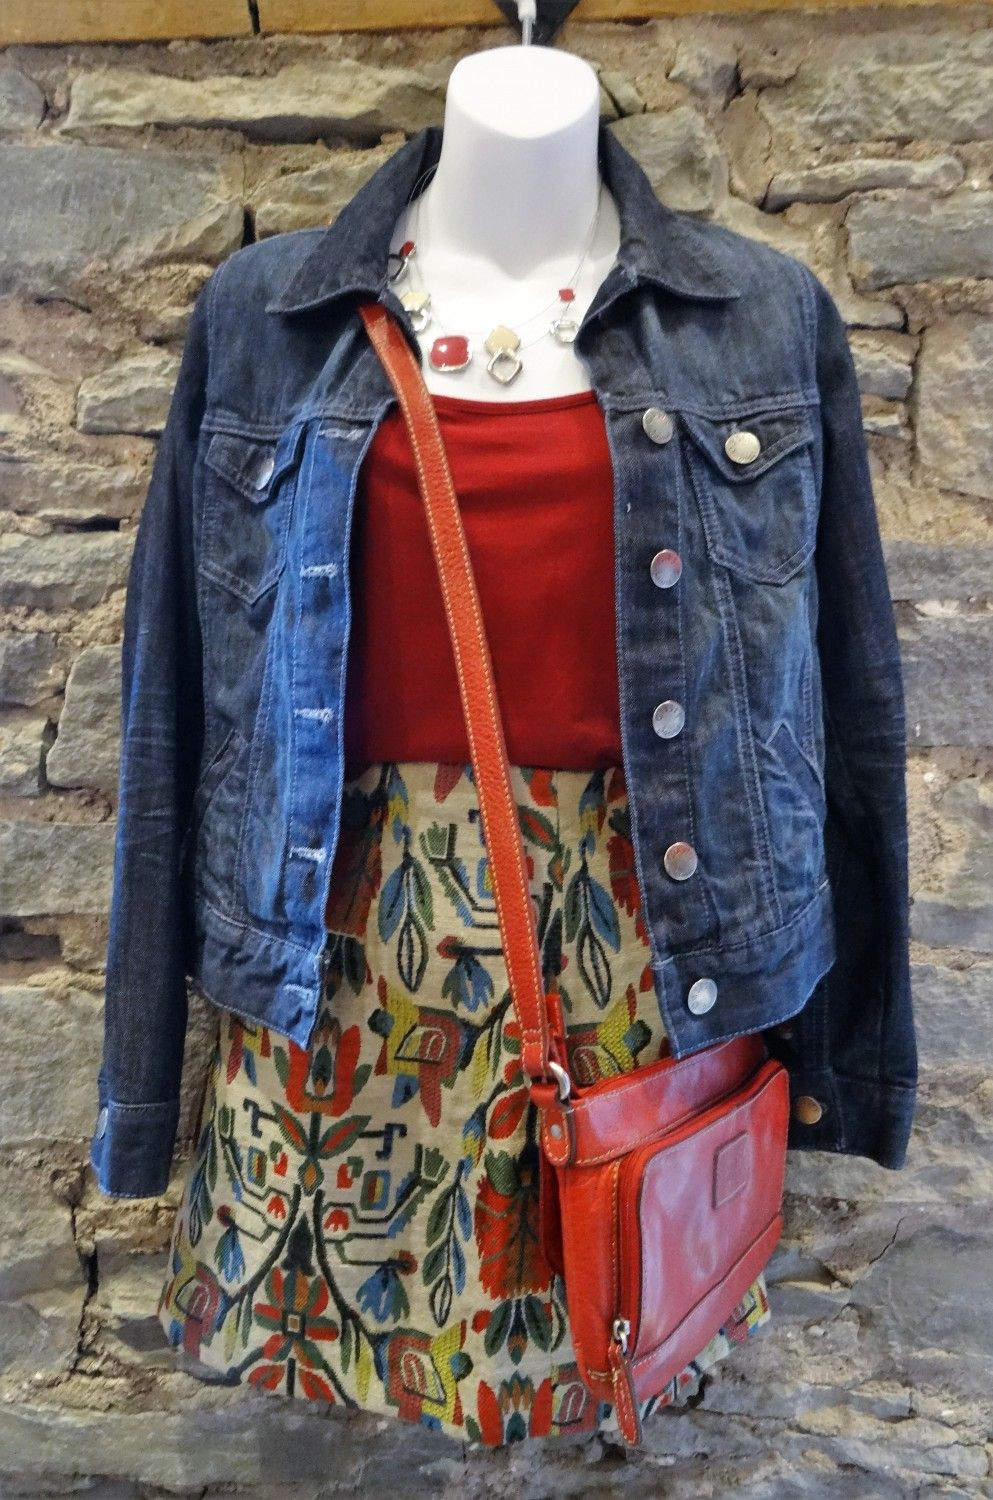 Oasis Jean Jacket, Griffin Skirt, Fossil Bag